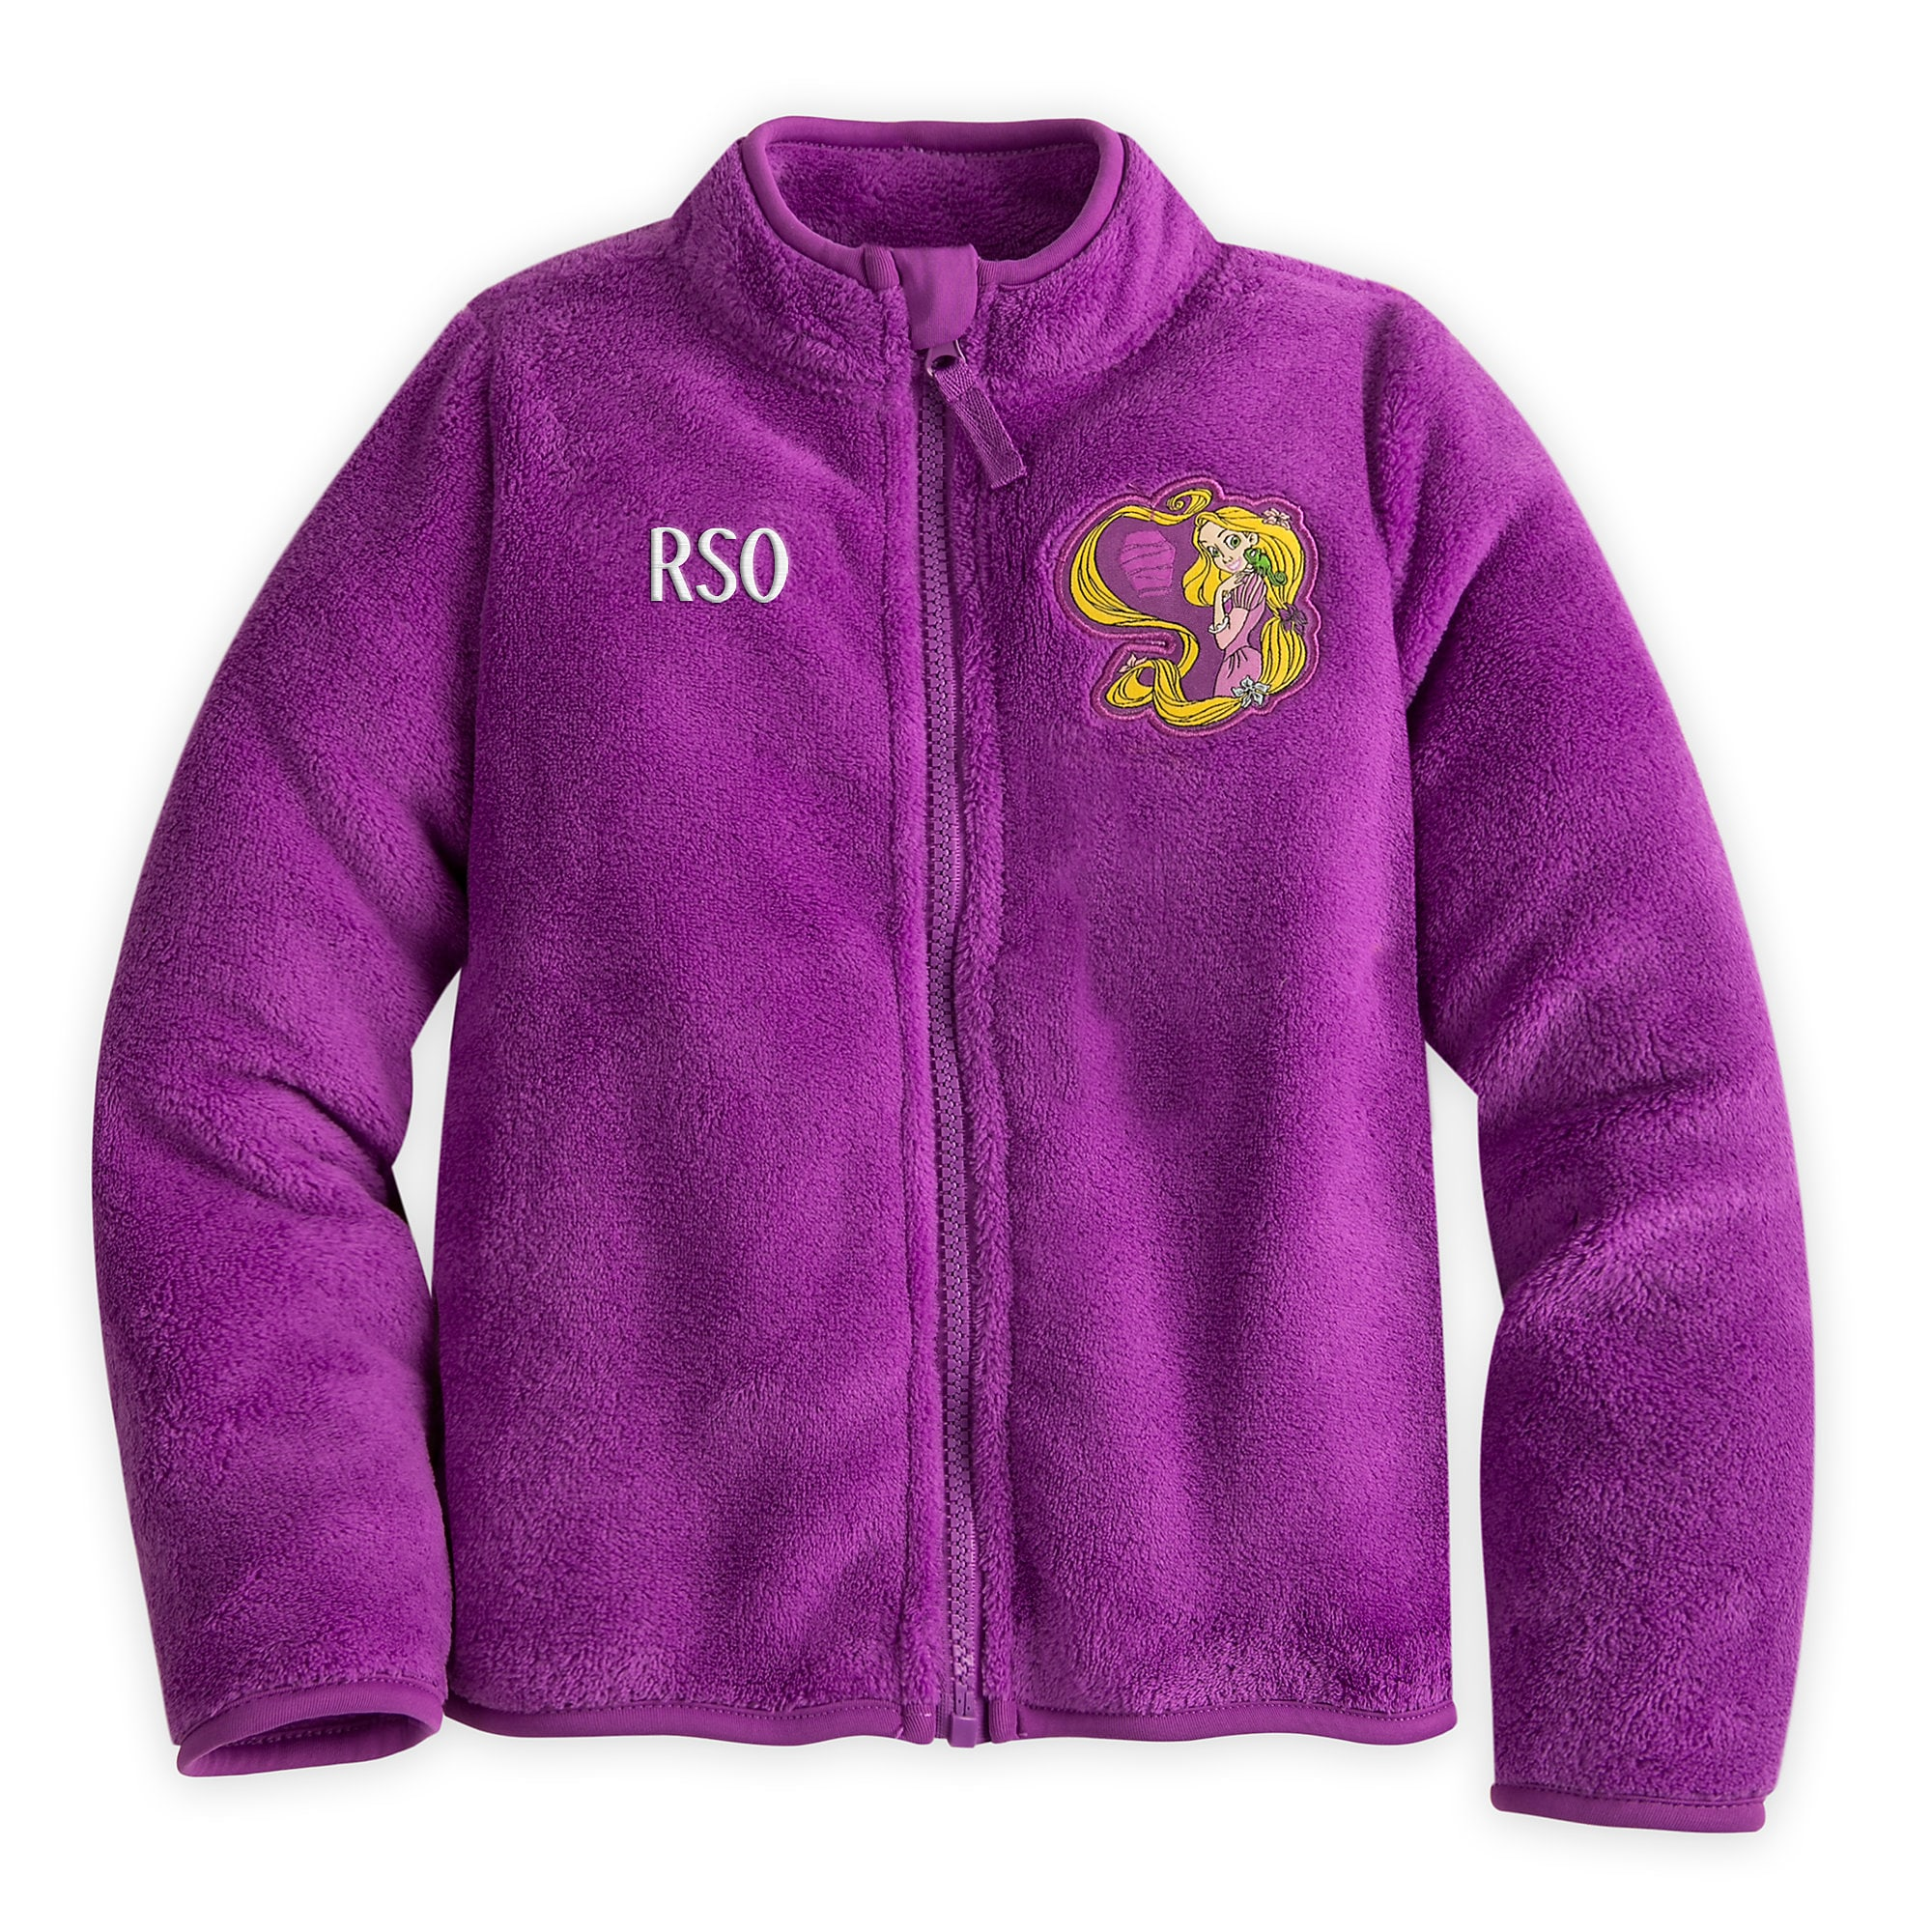 Rapunzel Fleece Jacket for Girls - Personalizable